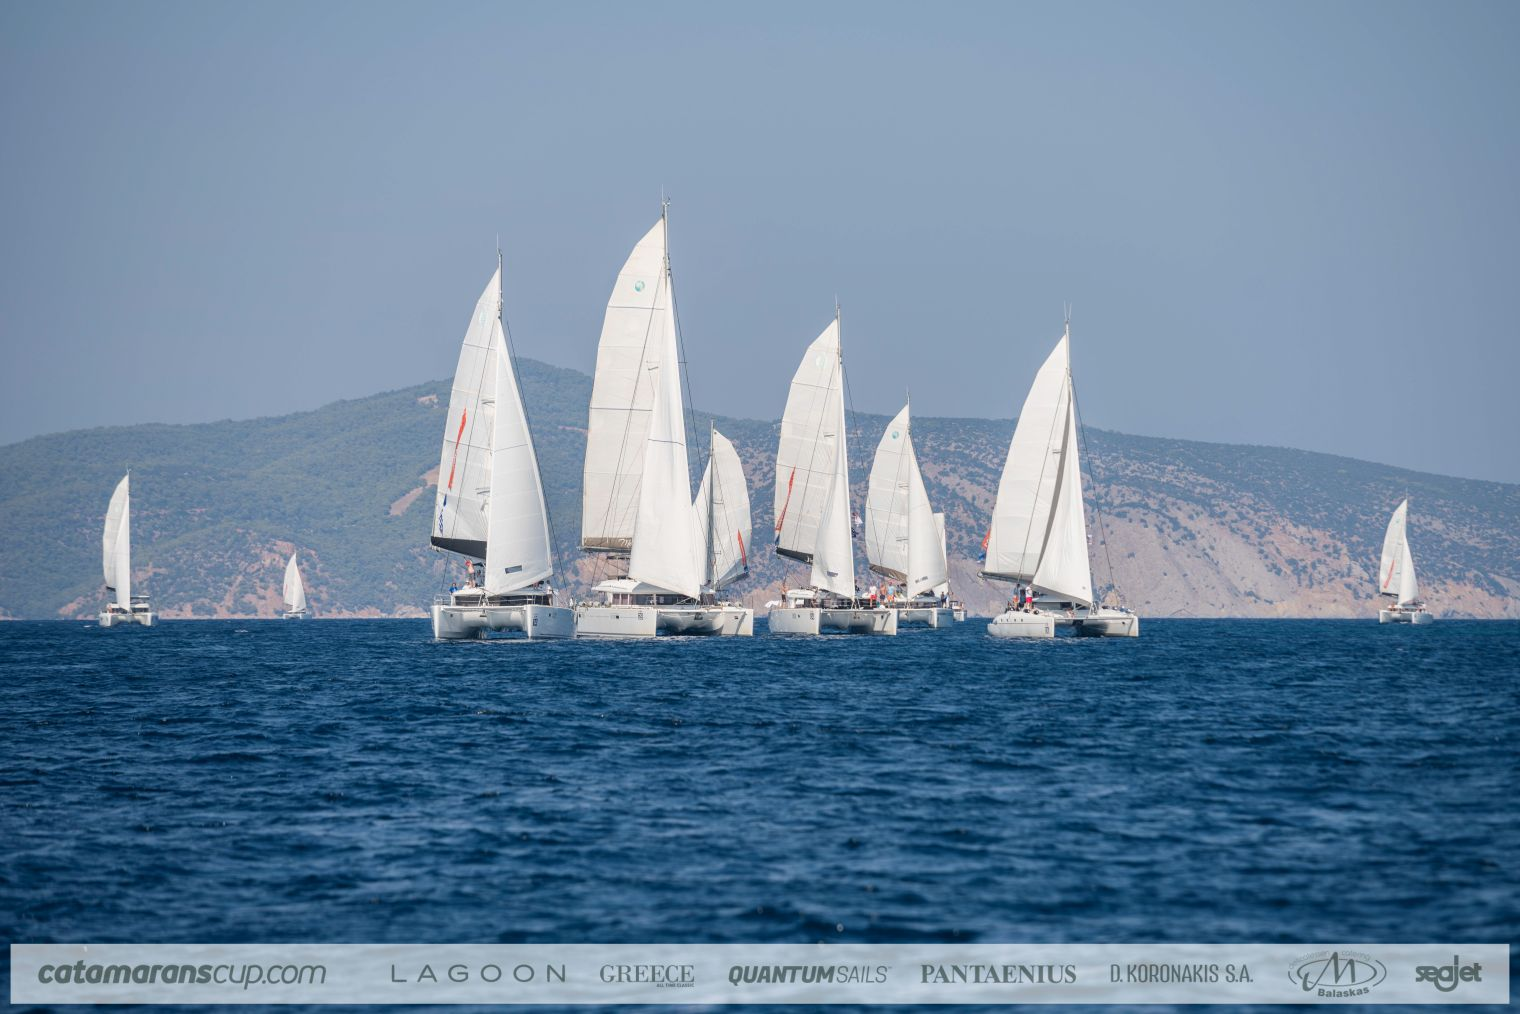 Lagoon is celebrating the 10th anniversary of the Catamarans Cup!